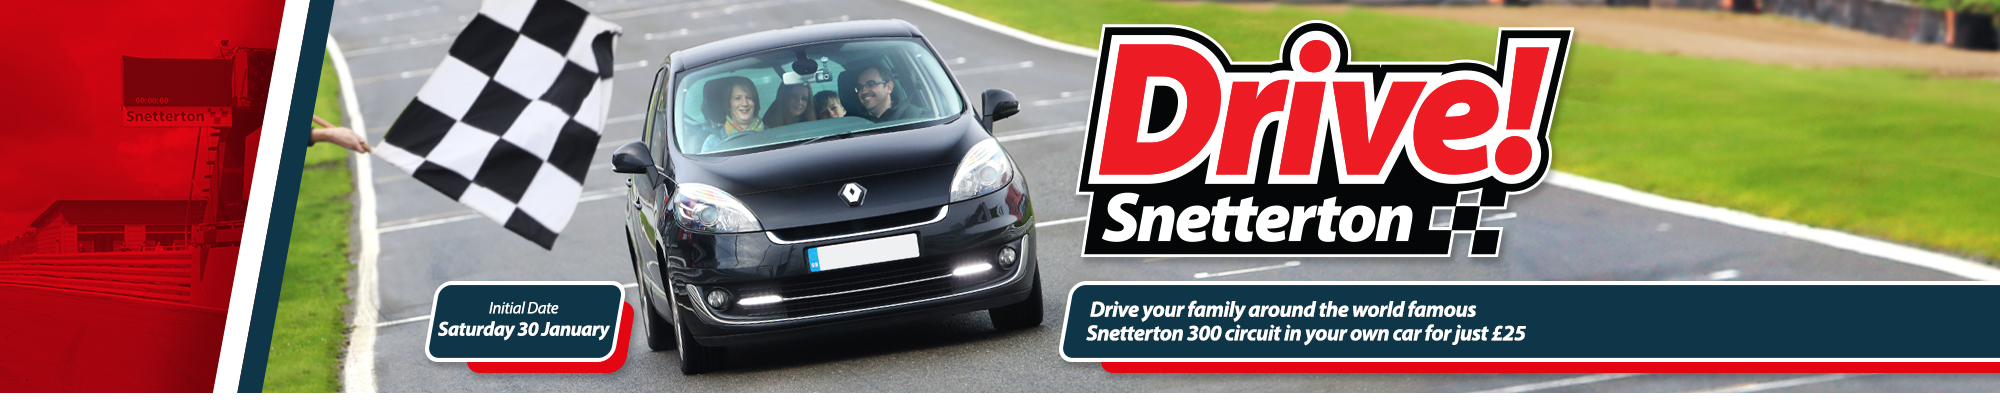 Welcome to Drive! Snetterton